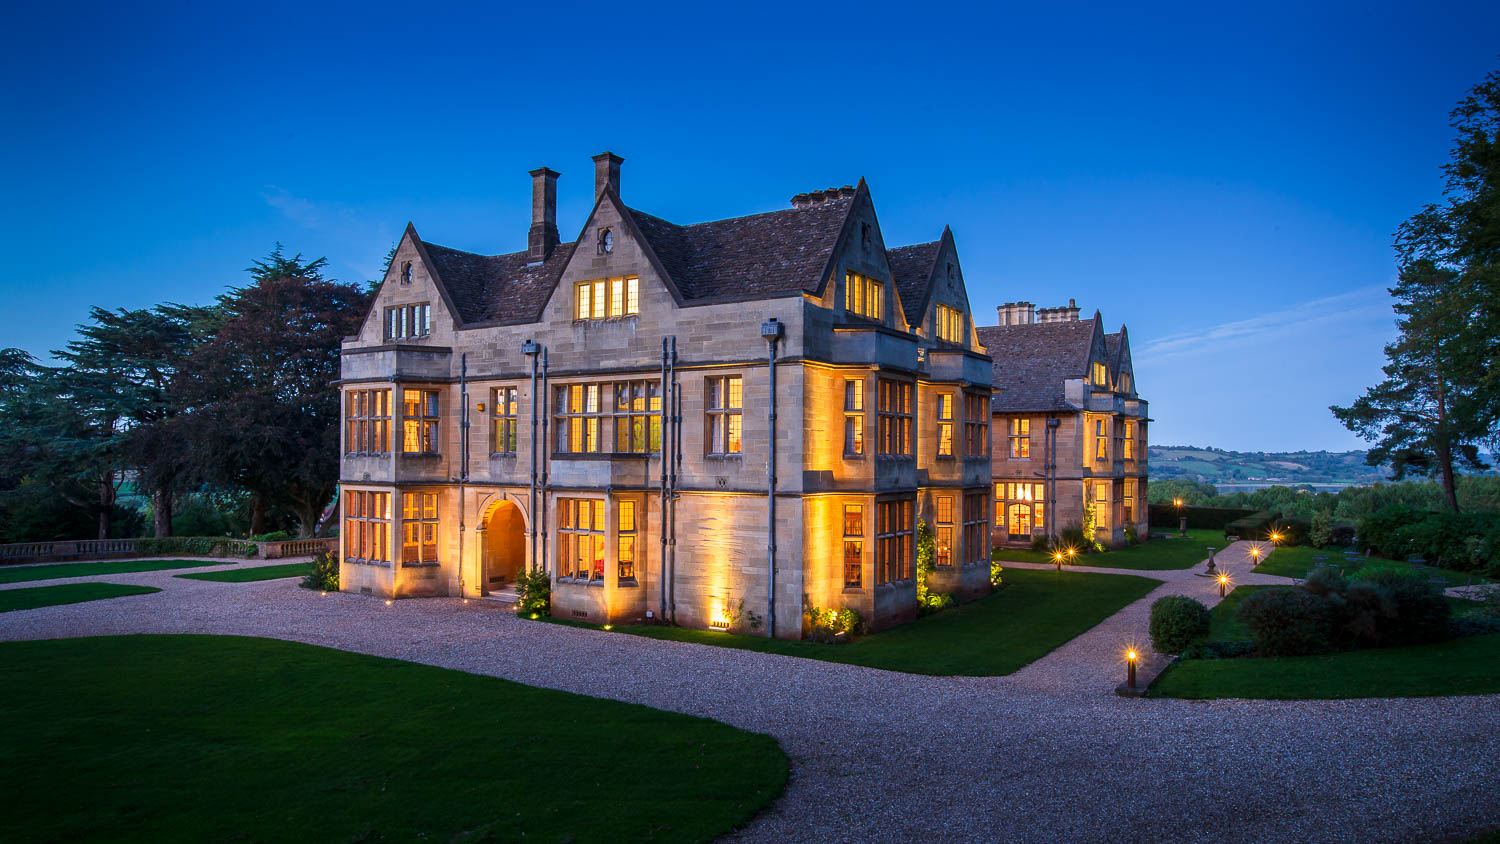 Coombe Lodge by Night